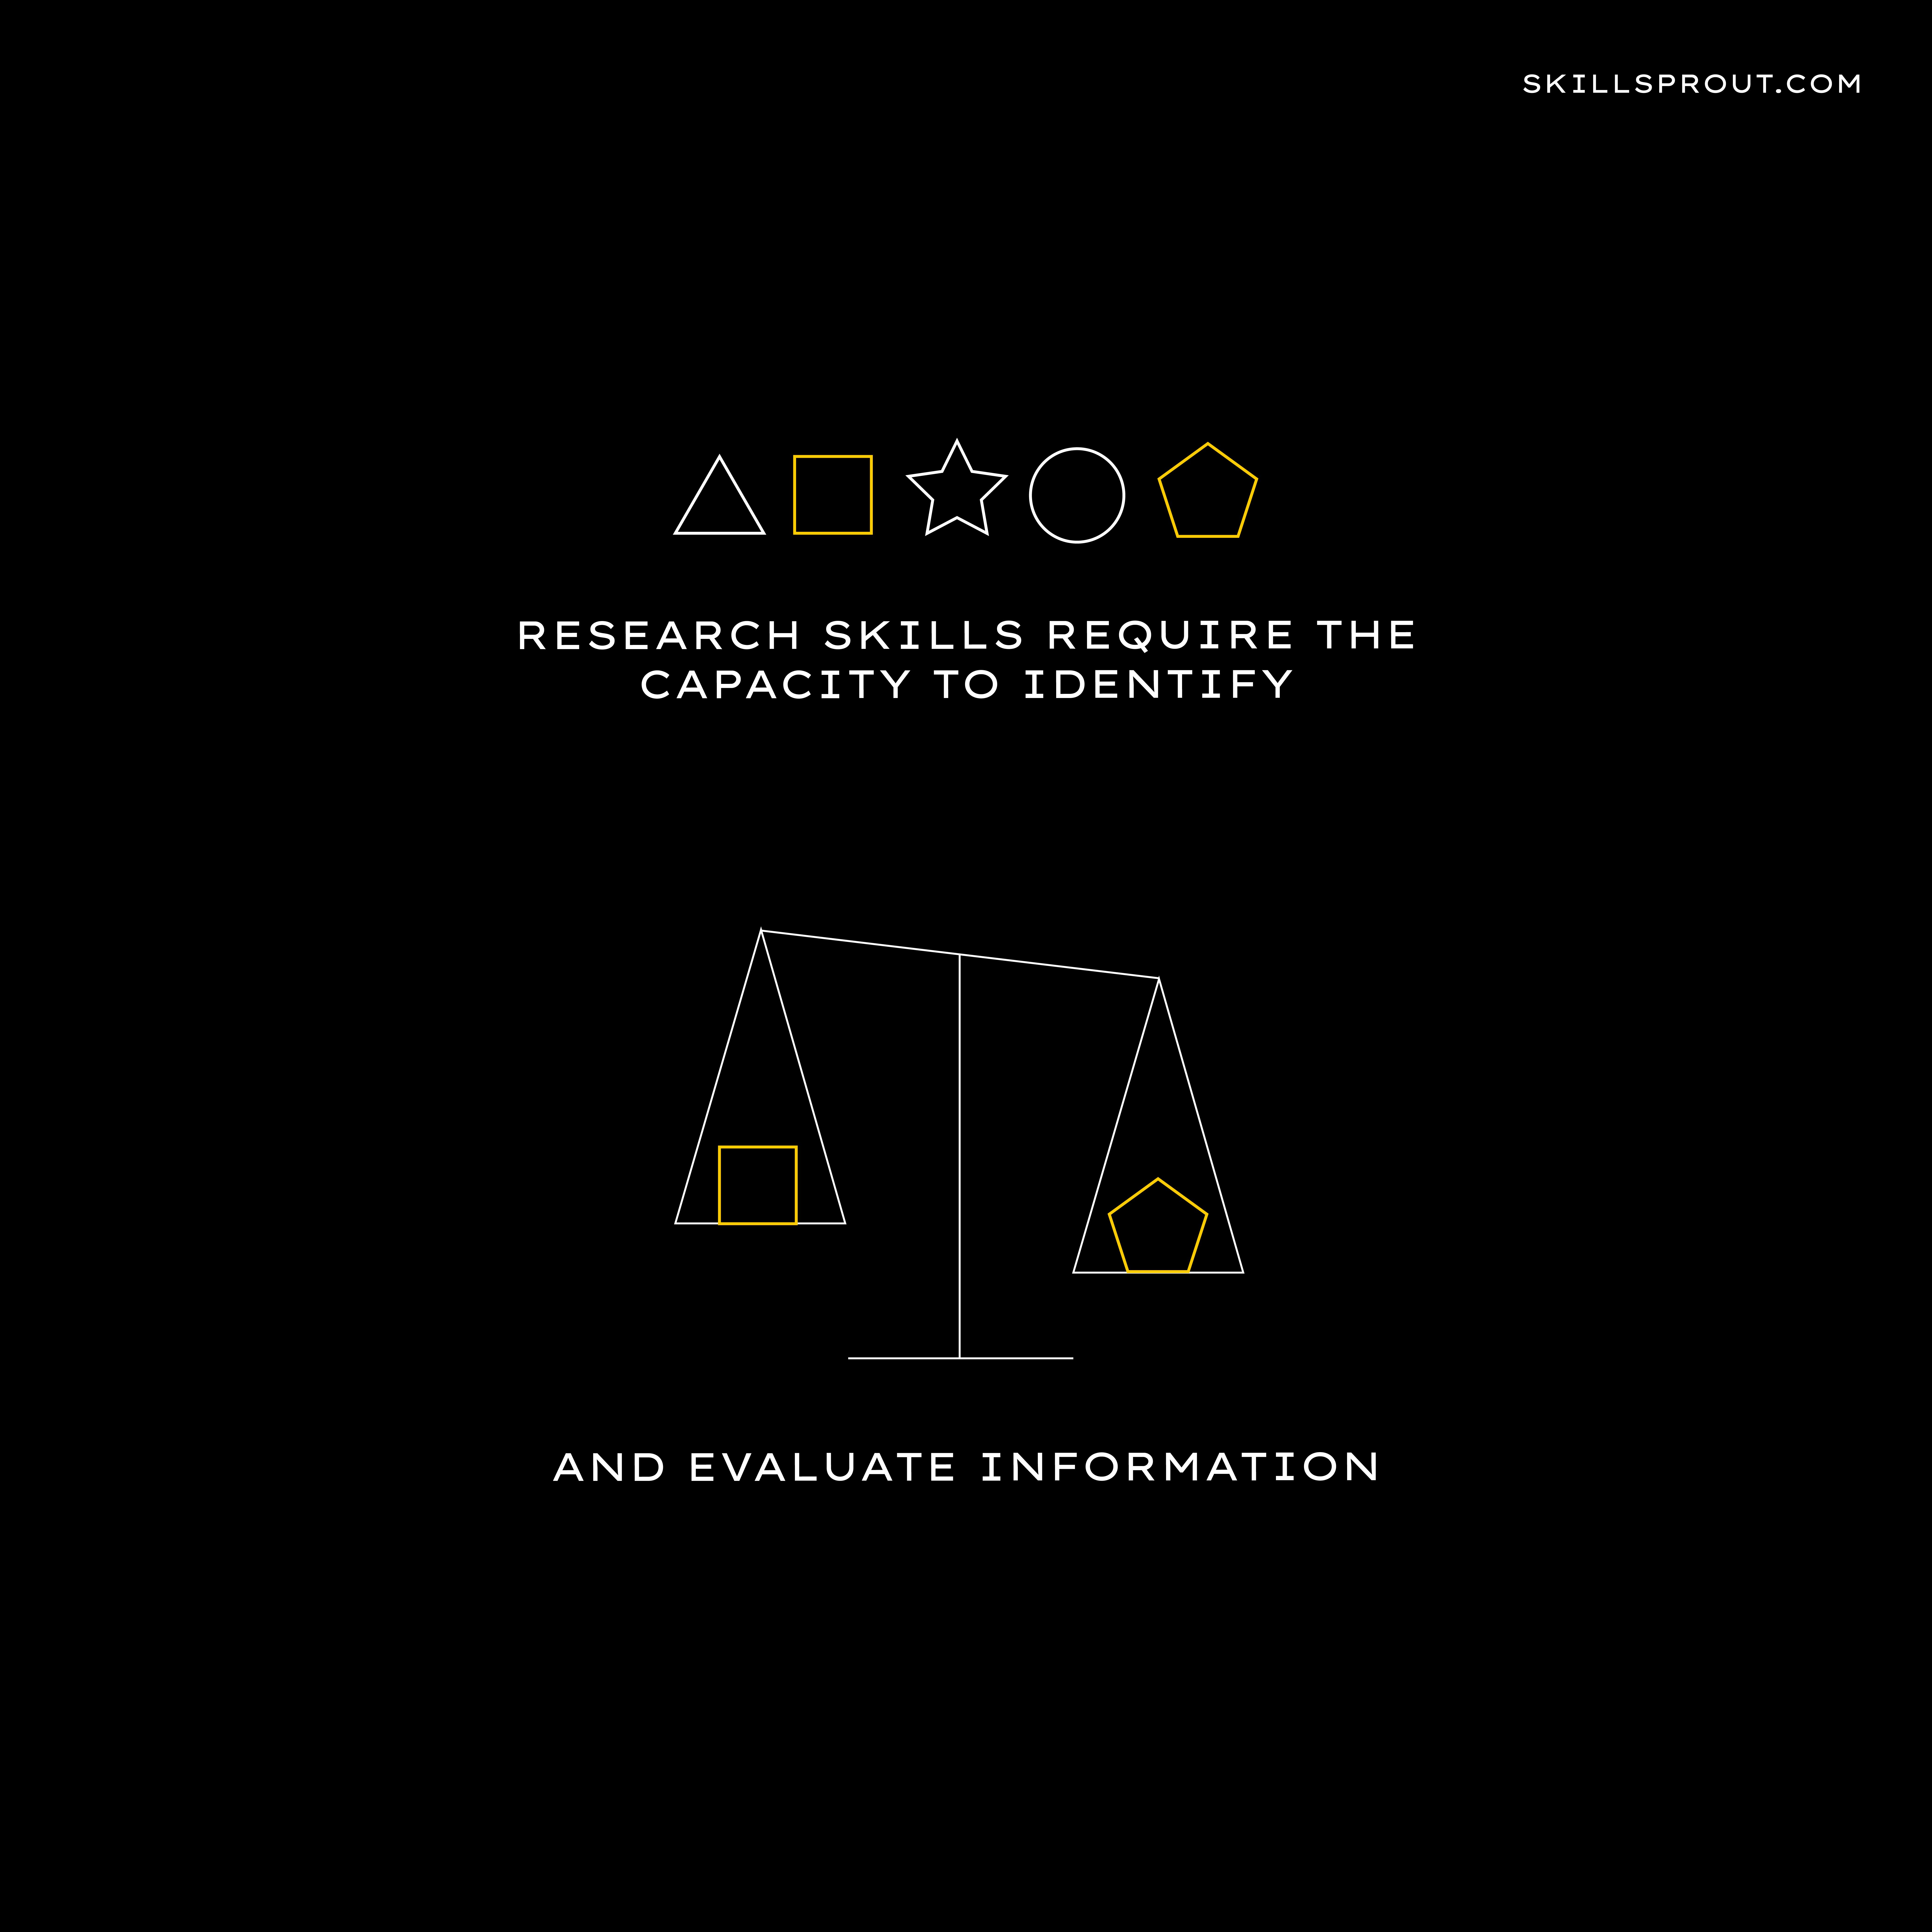 Research skills require the capacity to identify and evaluate information.